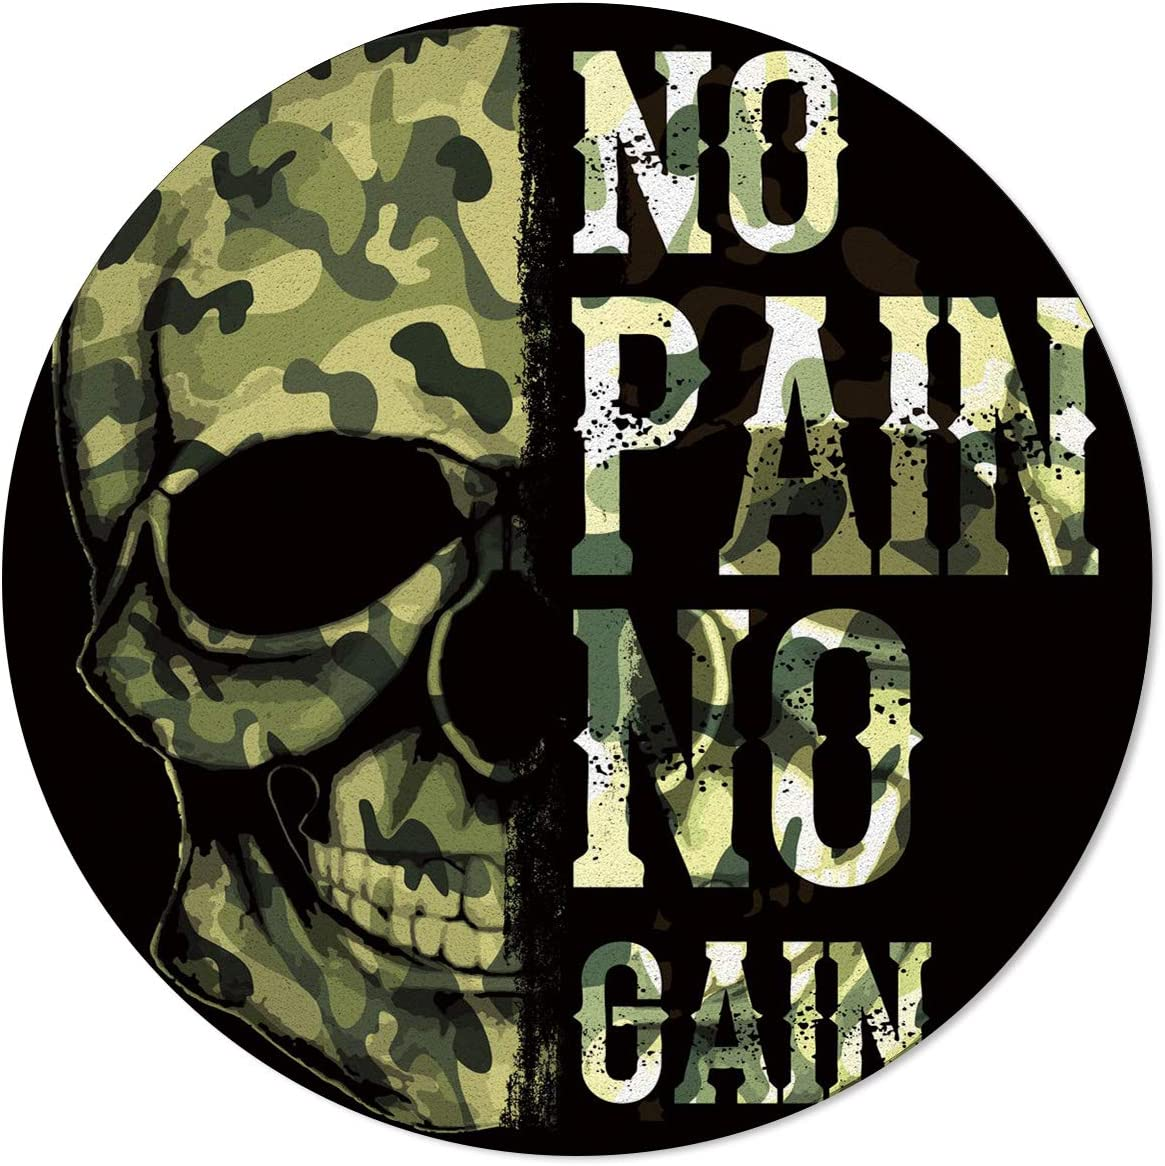 Luxury OneHoney Round Area Rugs 5ft In Detroit Mall Skull Camouflage Military Green